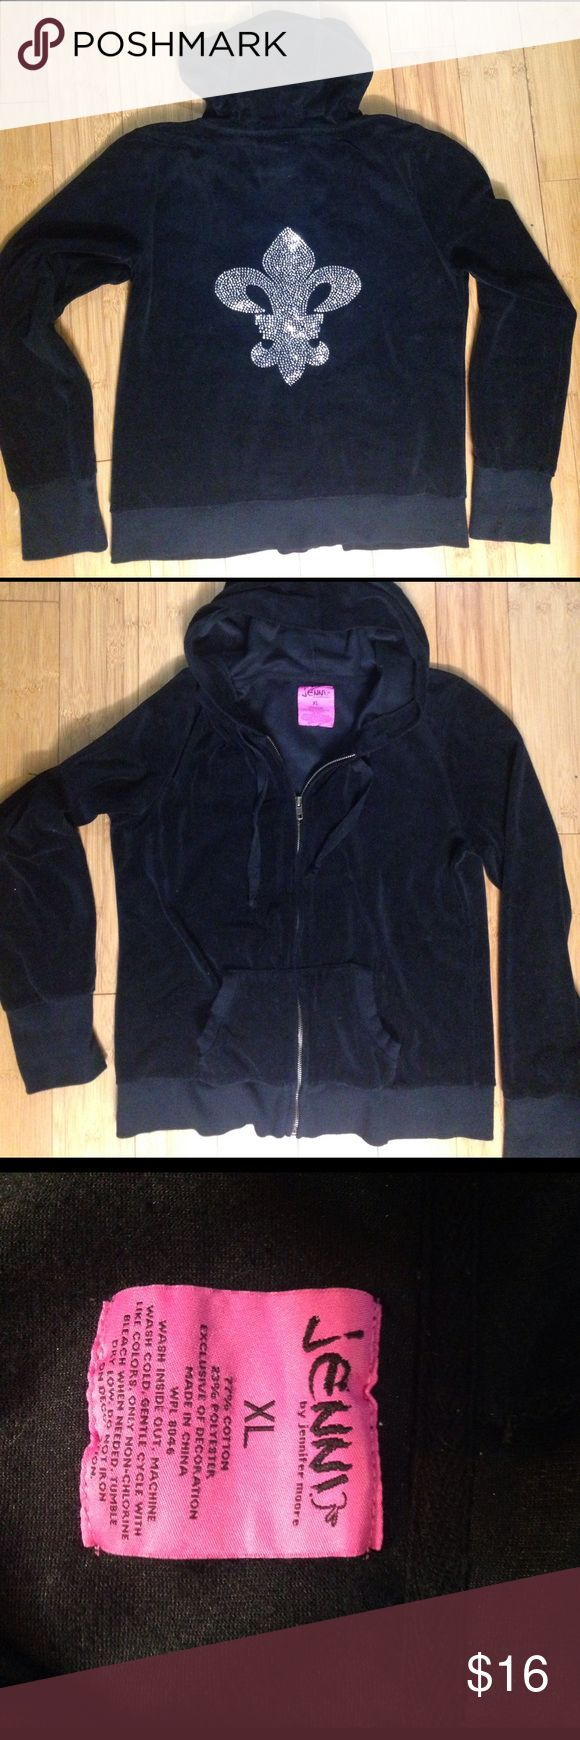 Jenny By Jennifer Moore jacket with Bling Black velour jacket with a bling design on back in excellent condition, no issues. Size is XL Jenni by Jennifer Moore Jackets & Coats